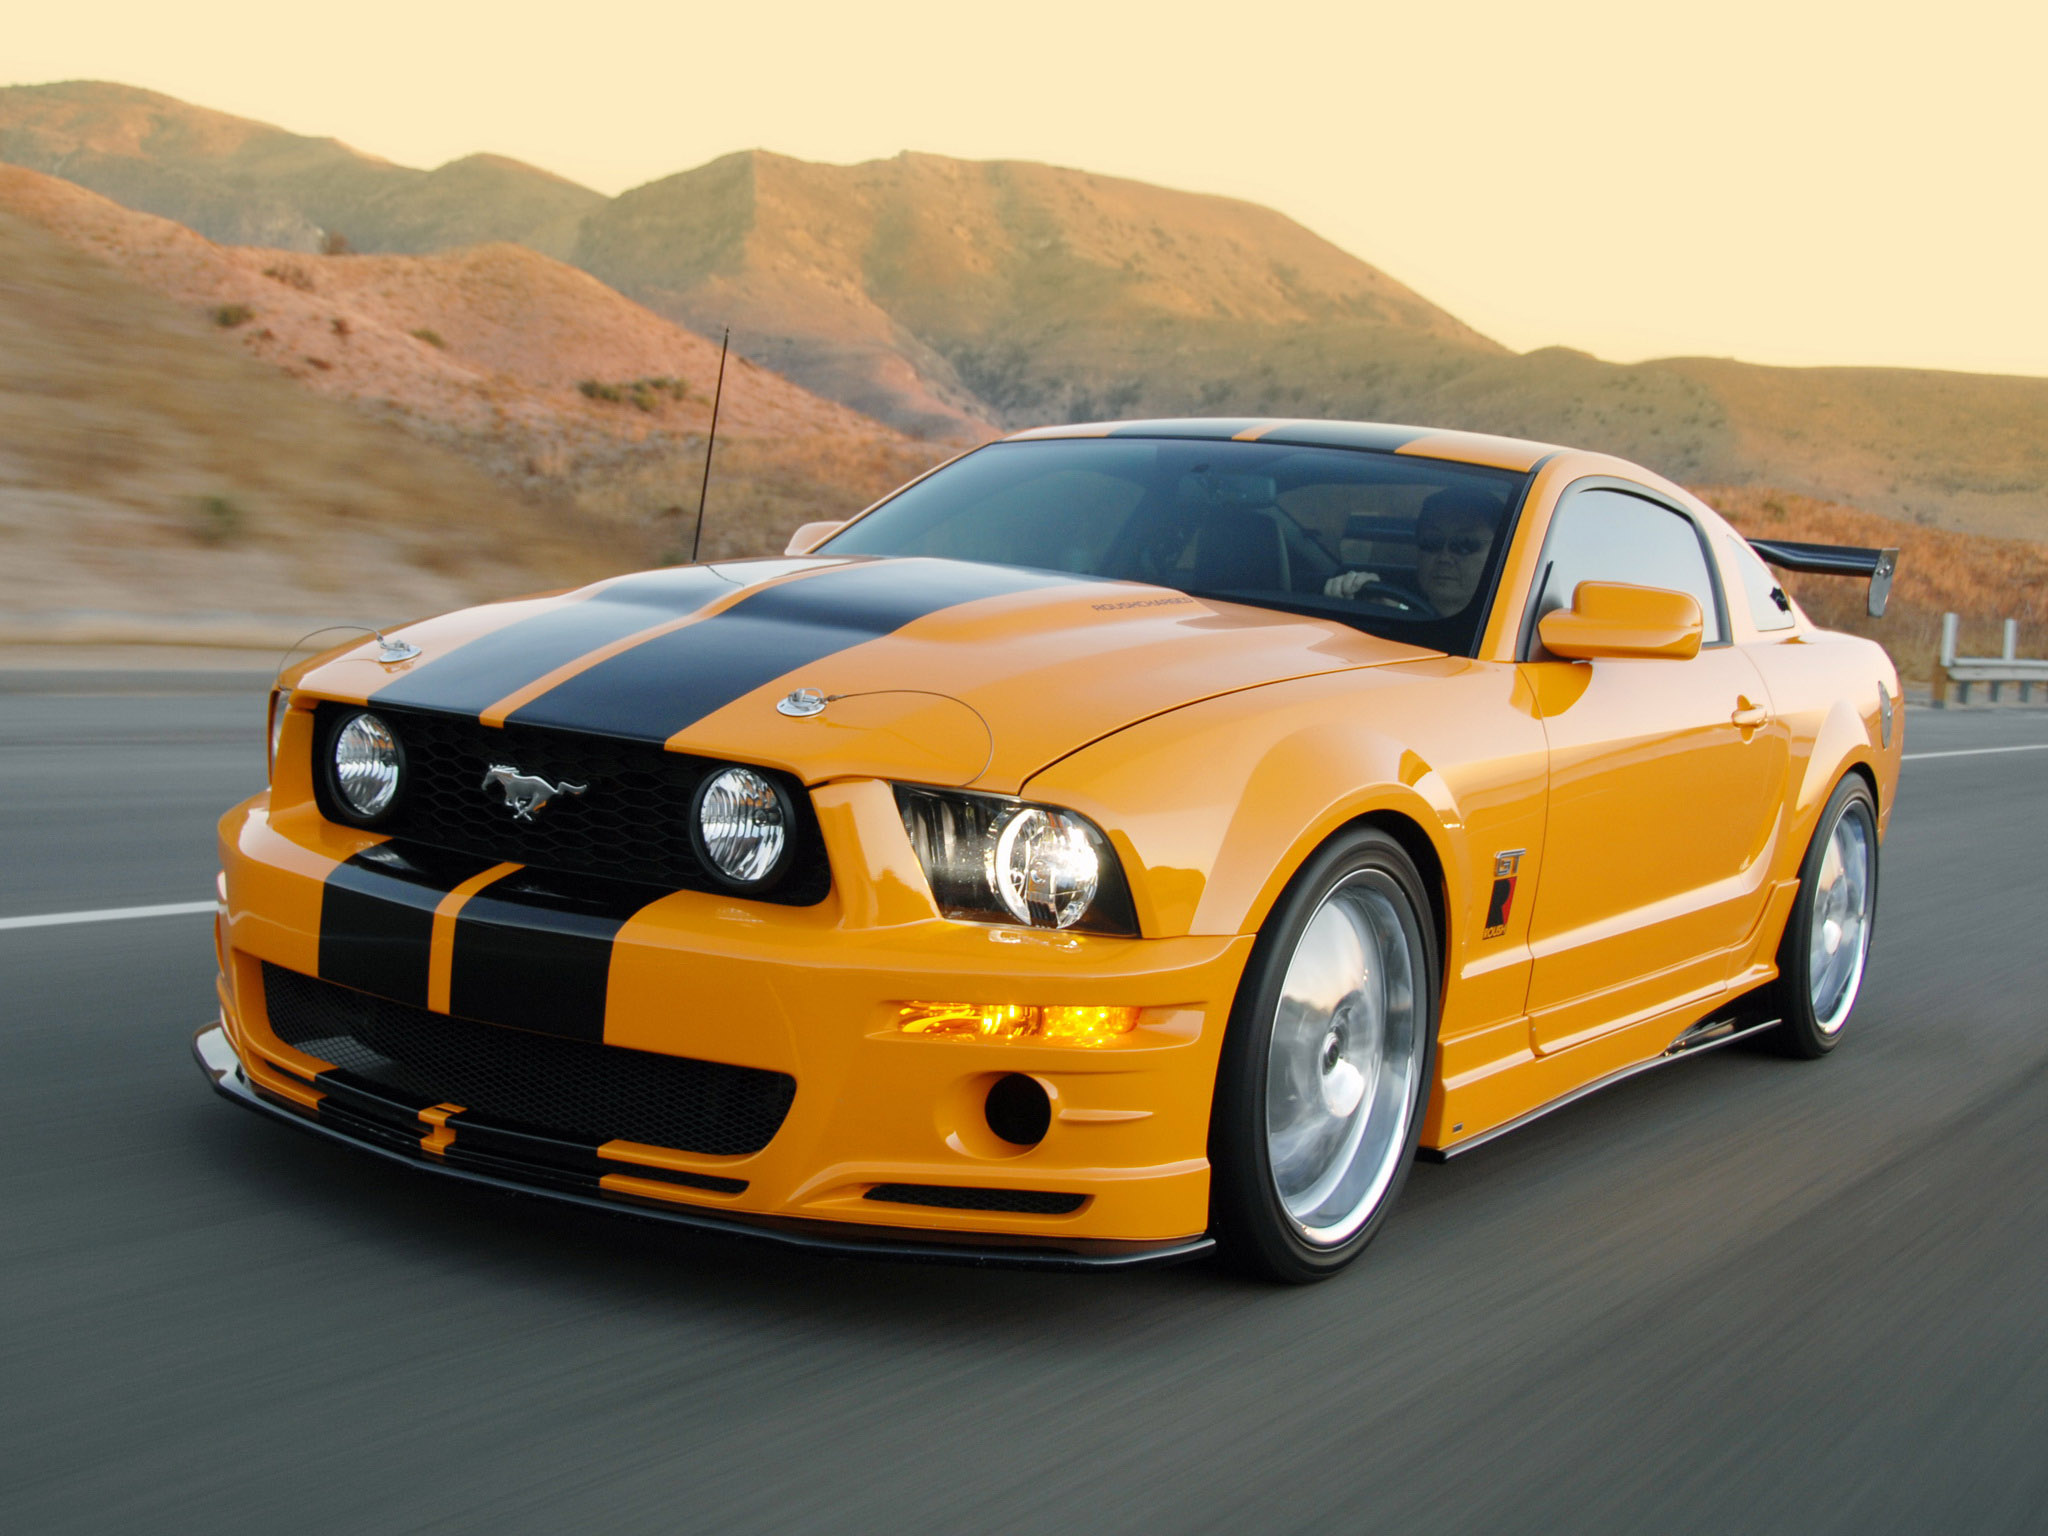 2006 roush ford mustang stage 3 muscle h wallpaper 2048x1536 193848 wallpaperup. Black Bedroom Furniture Sets. Home Design Ideas